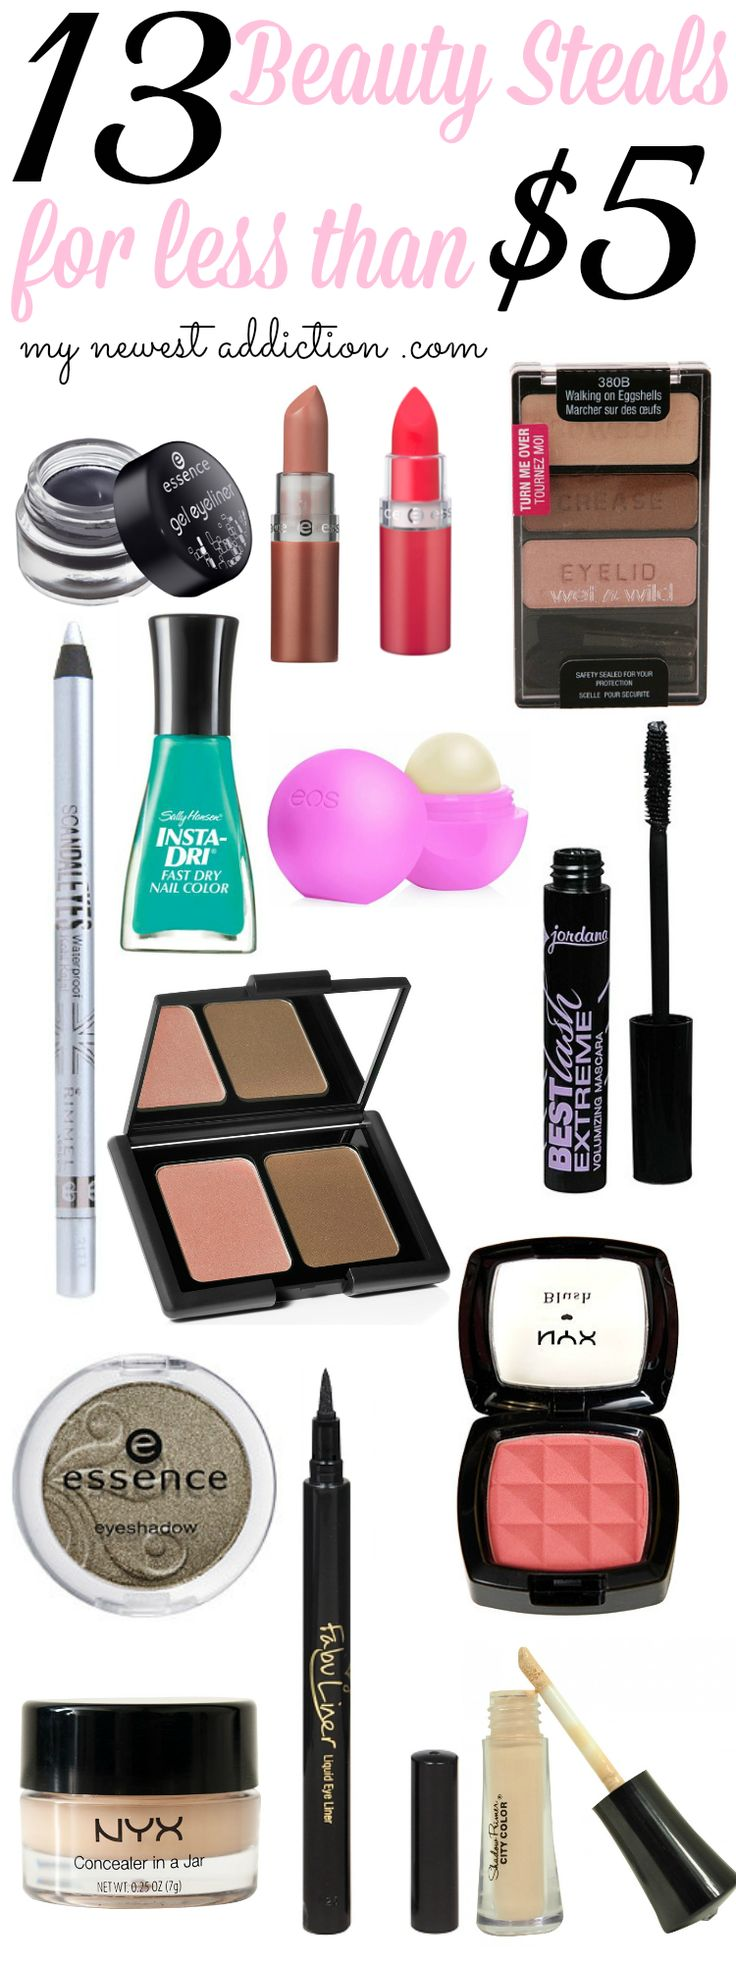 Beauty Steals Under $5 - My Newest Addiction Beauty Blog #beautysteals #mynewestaddiction #drugstorebeauty